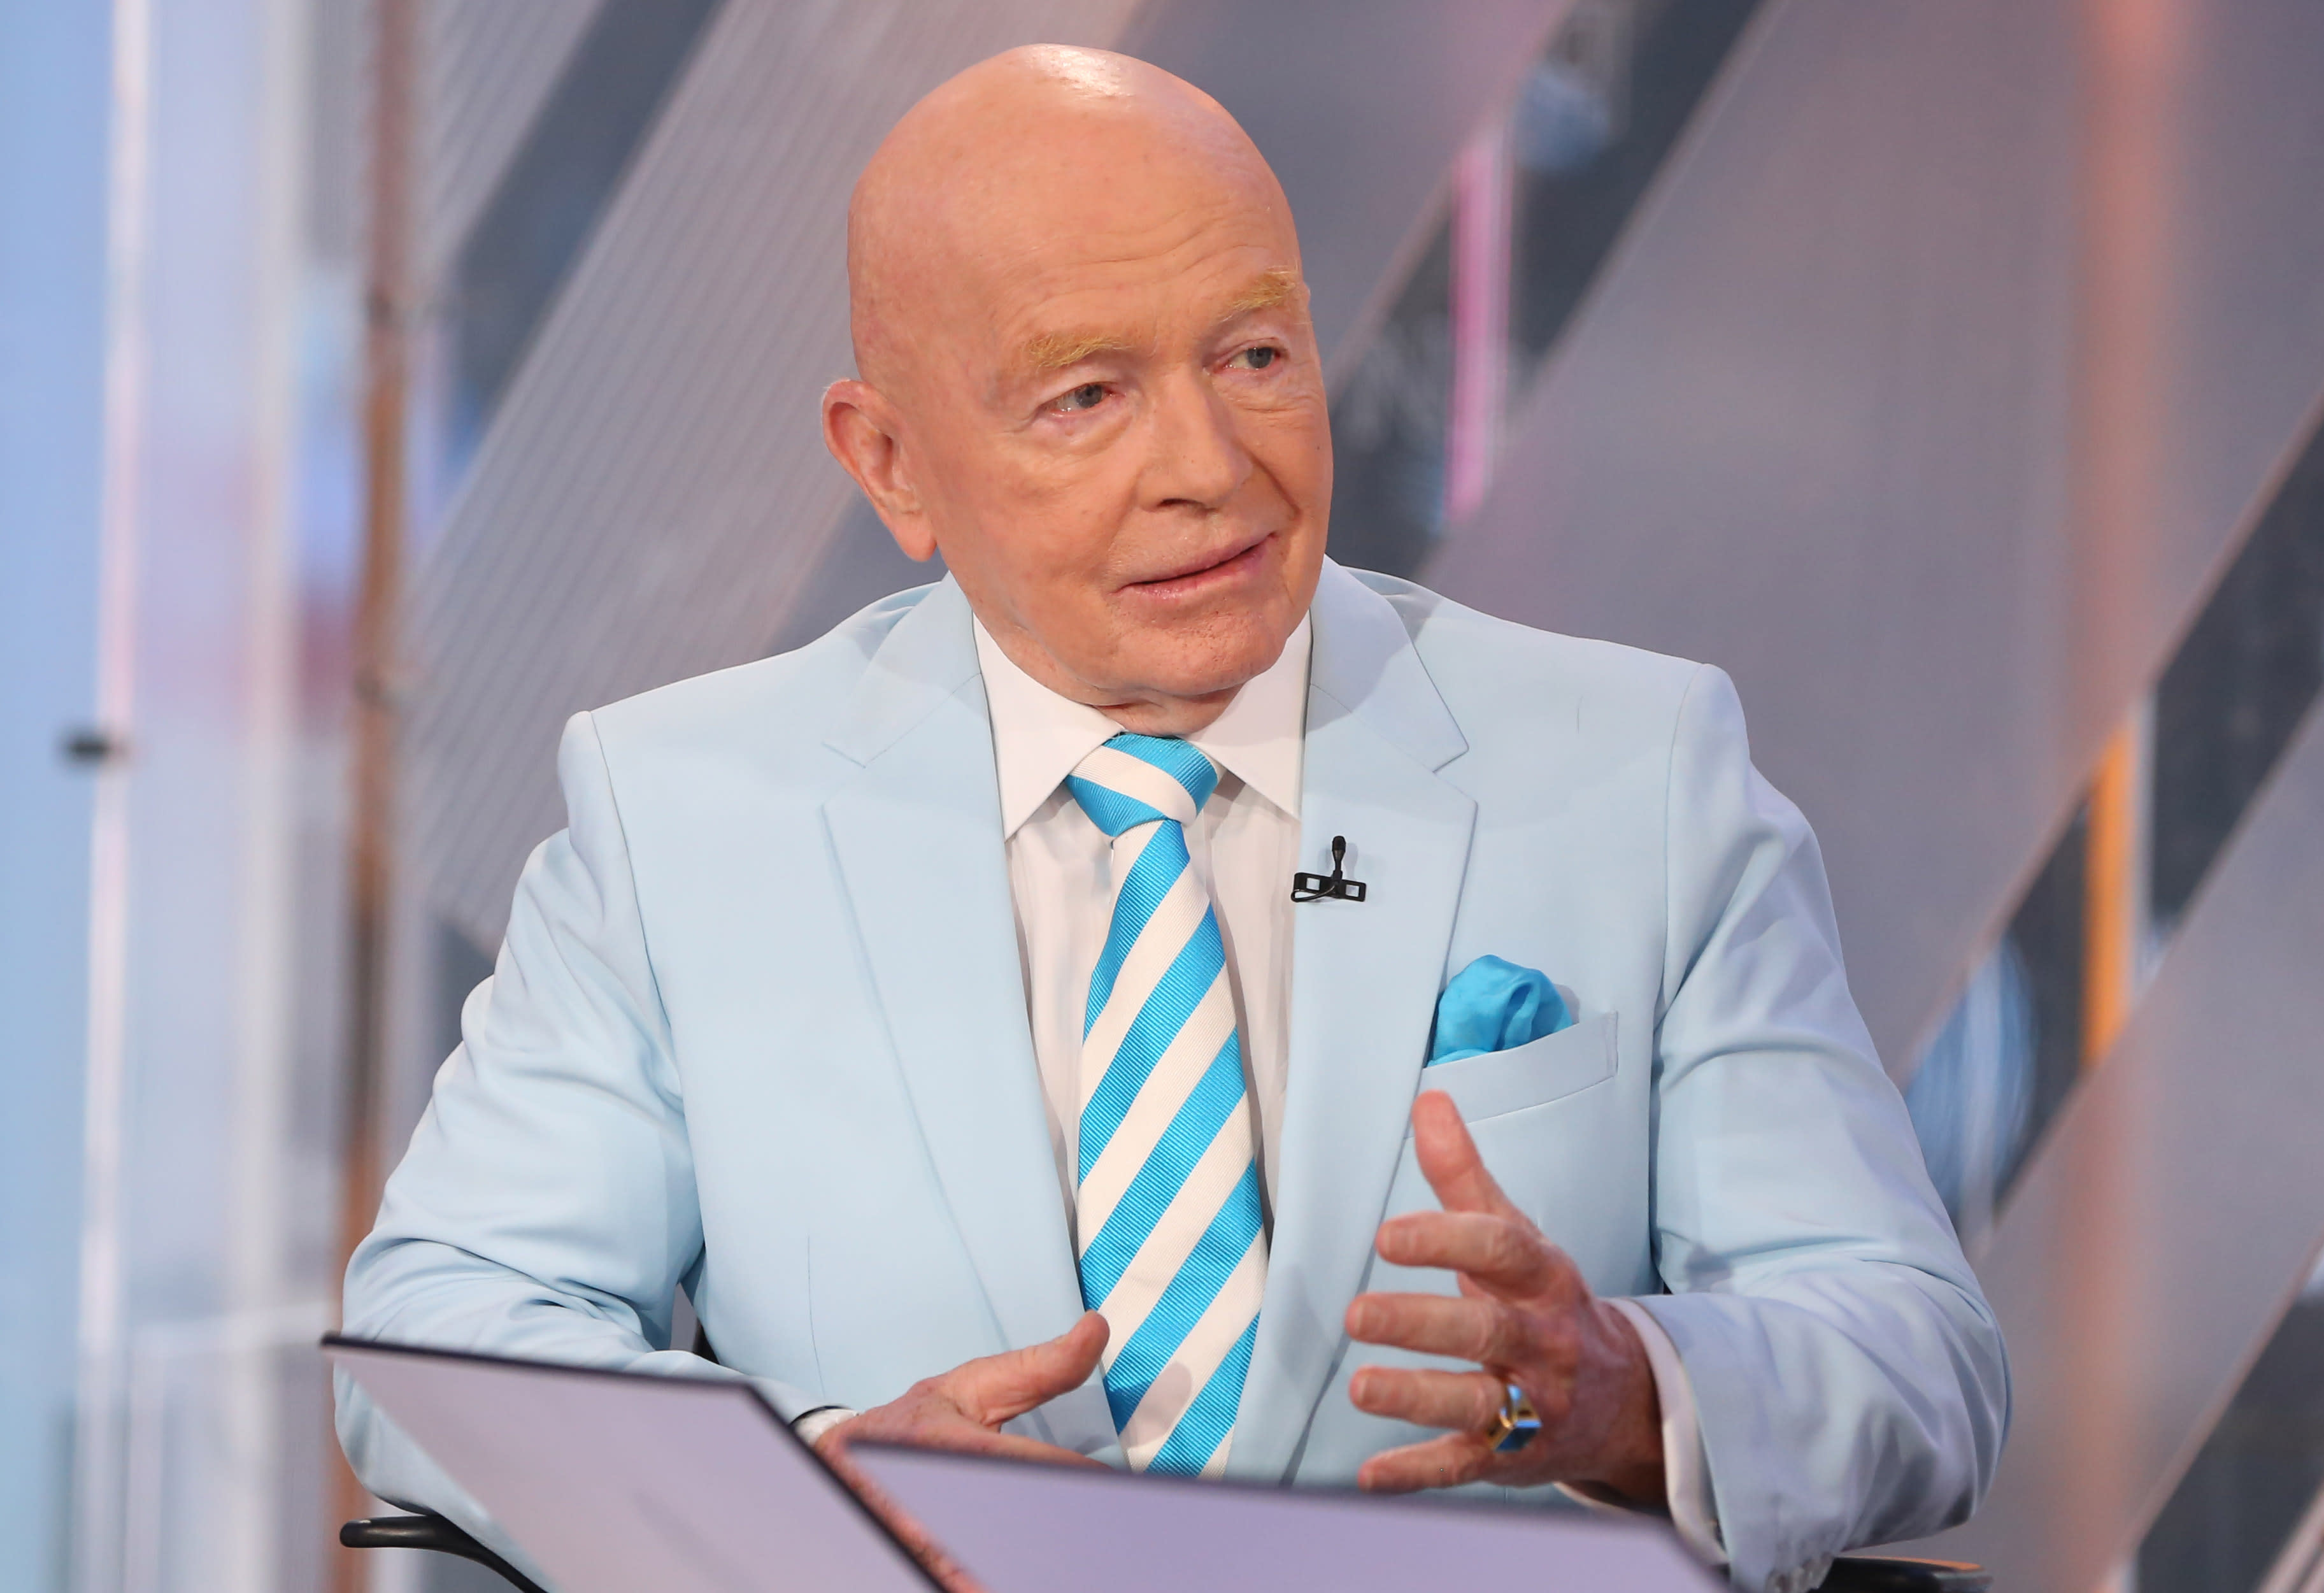 Mark Mobius agrees with Cooperman that a 25% market drop is possible if Warren elected